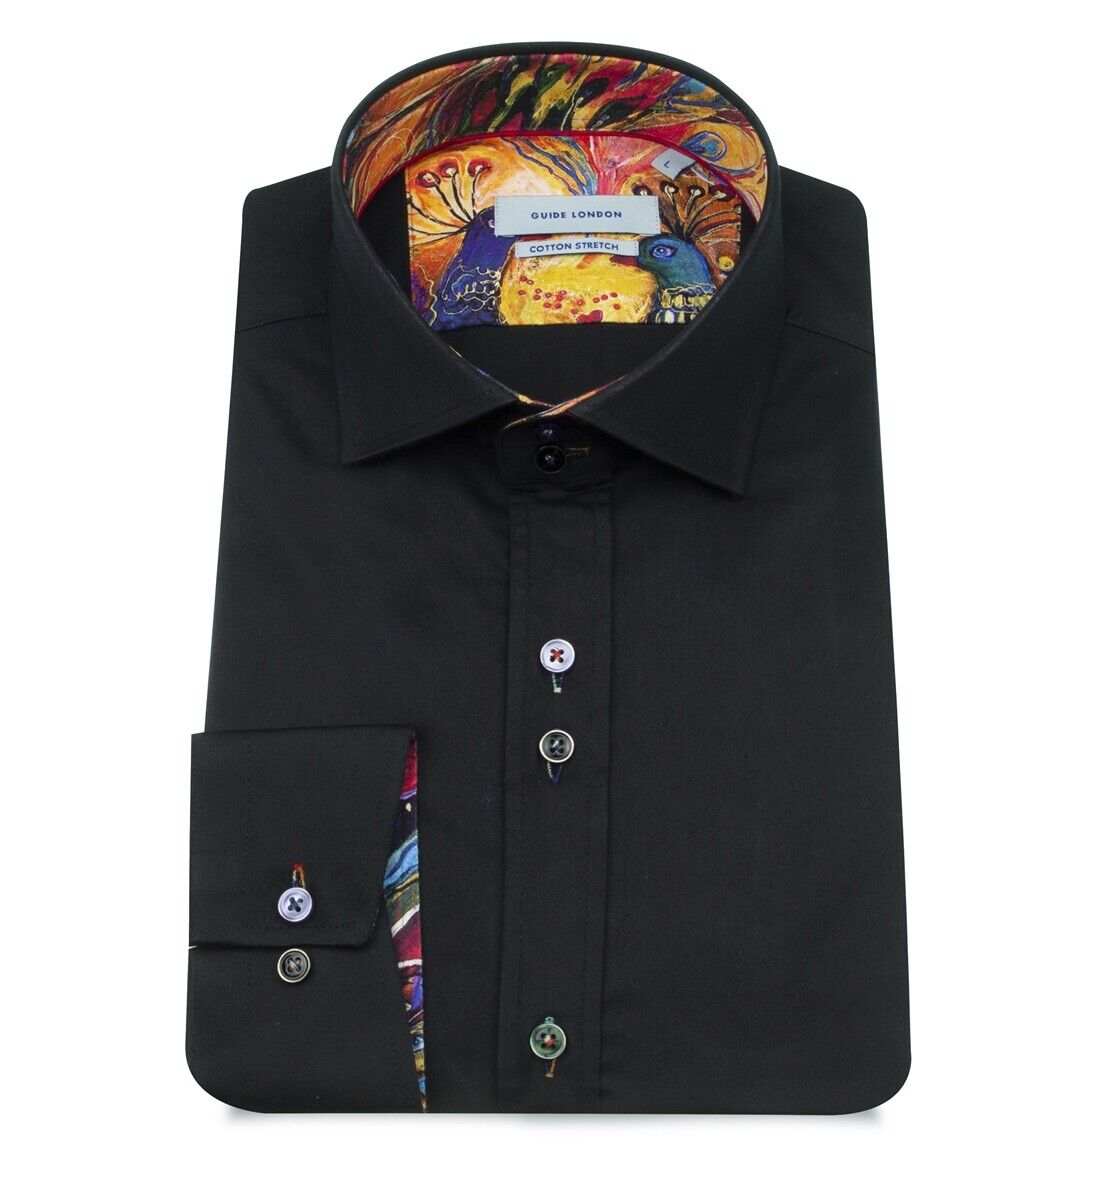 Guide London LS 75307 Black Detailed Shirt With Contrast Cuff & Placket